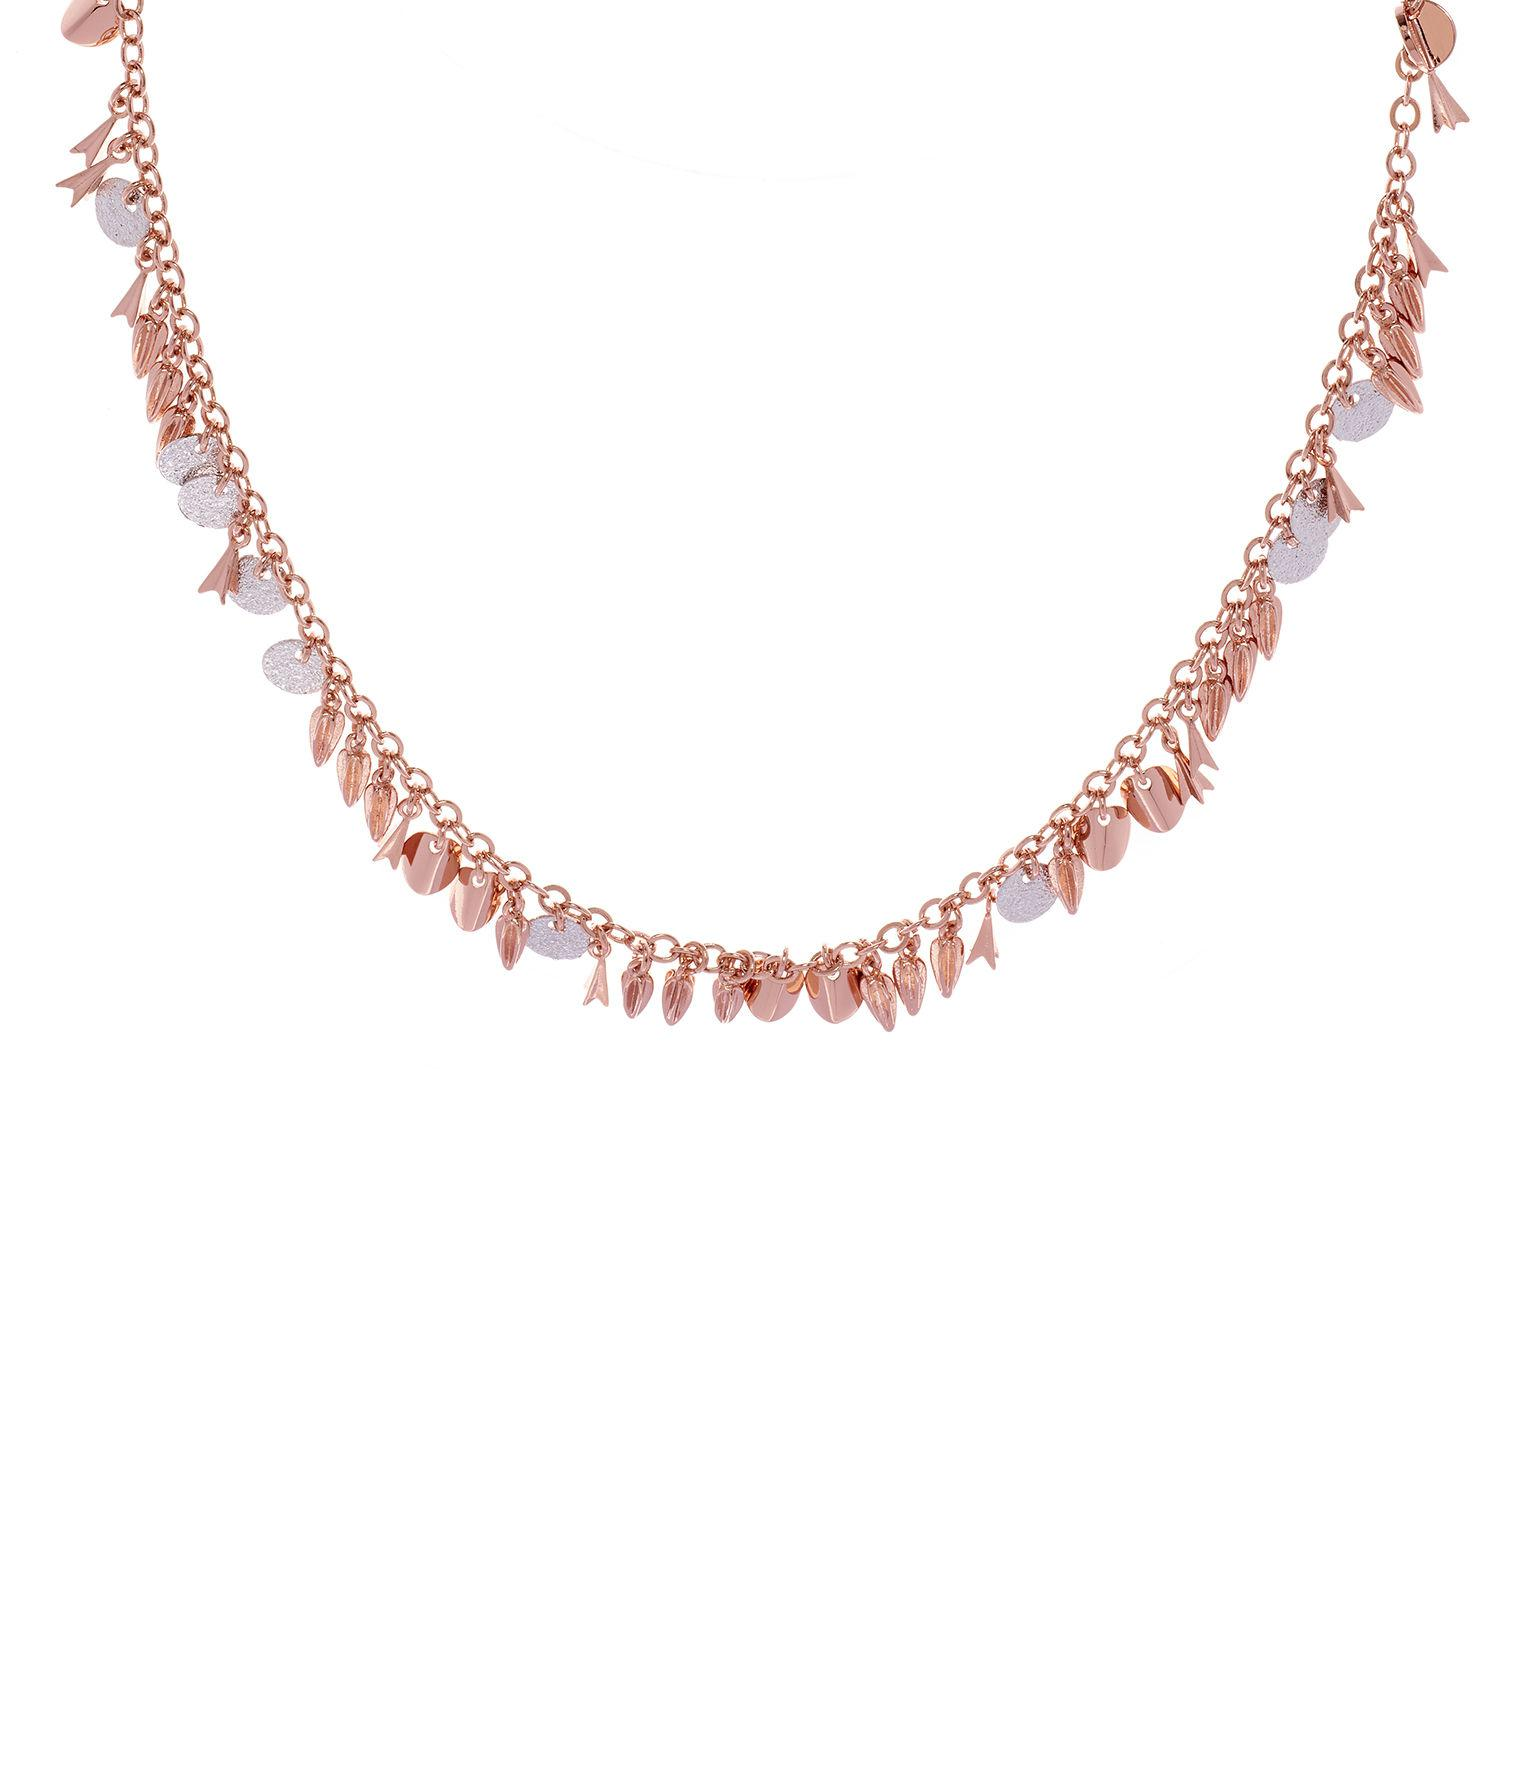 Karen Millen Sunset Drama Charm Necklace in Metallic